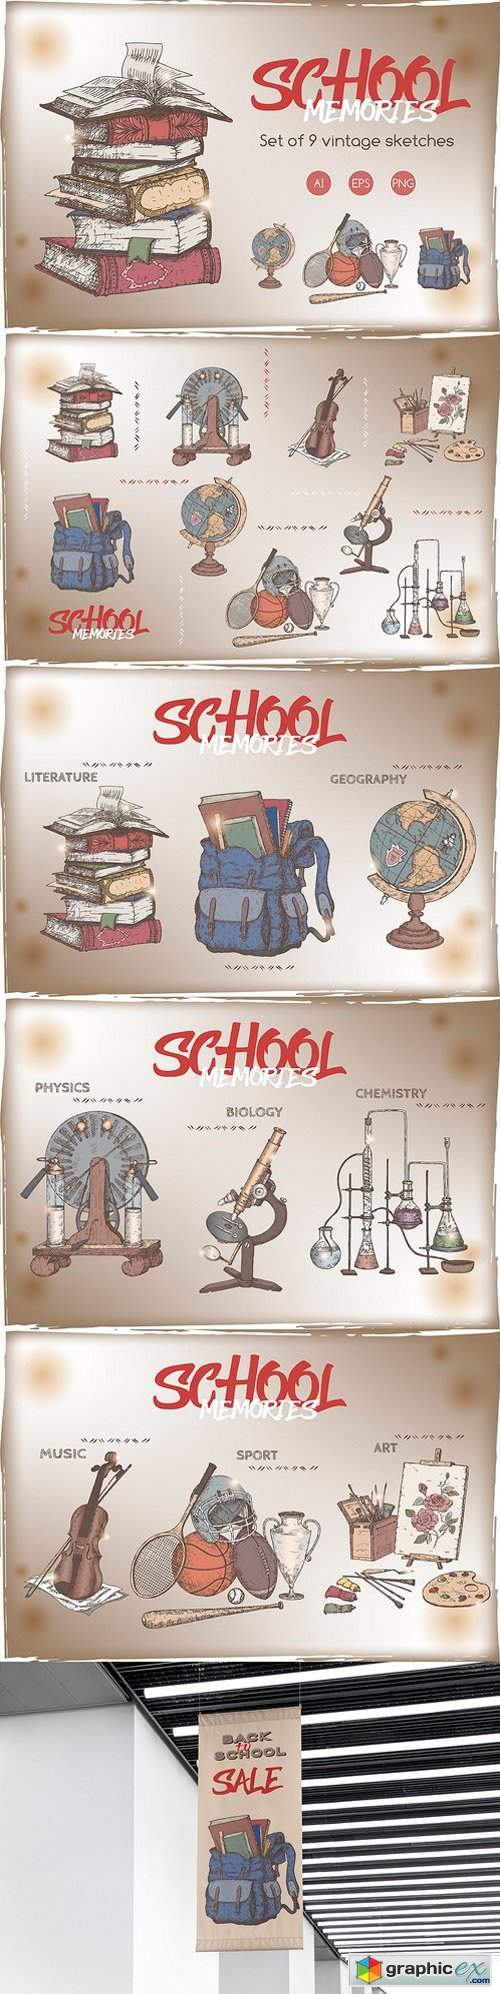 School memories vintage sketch set